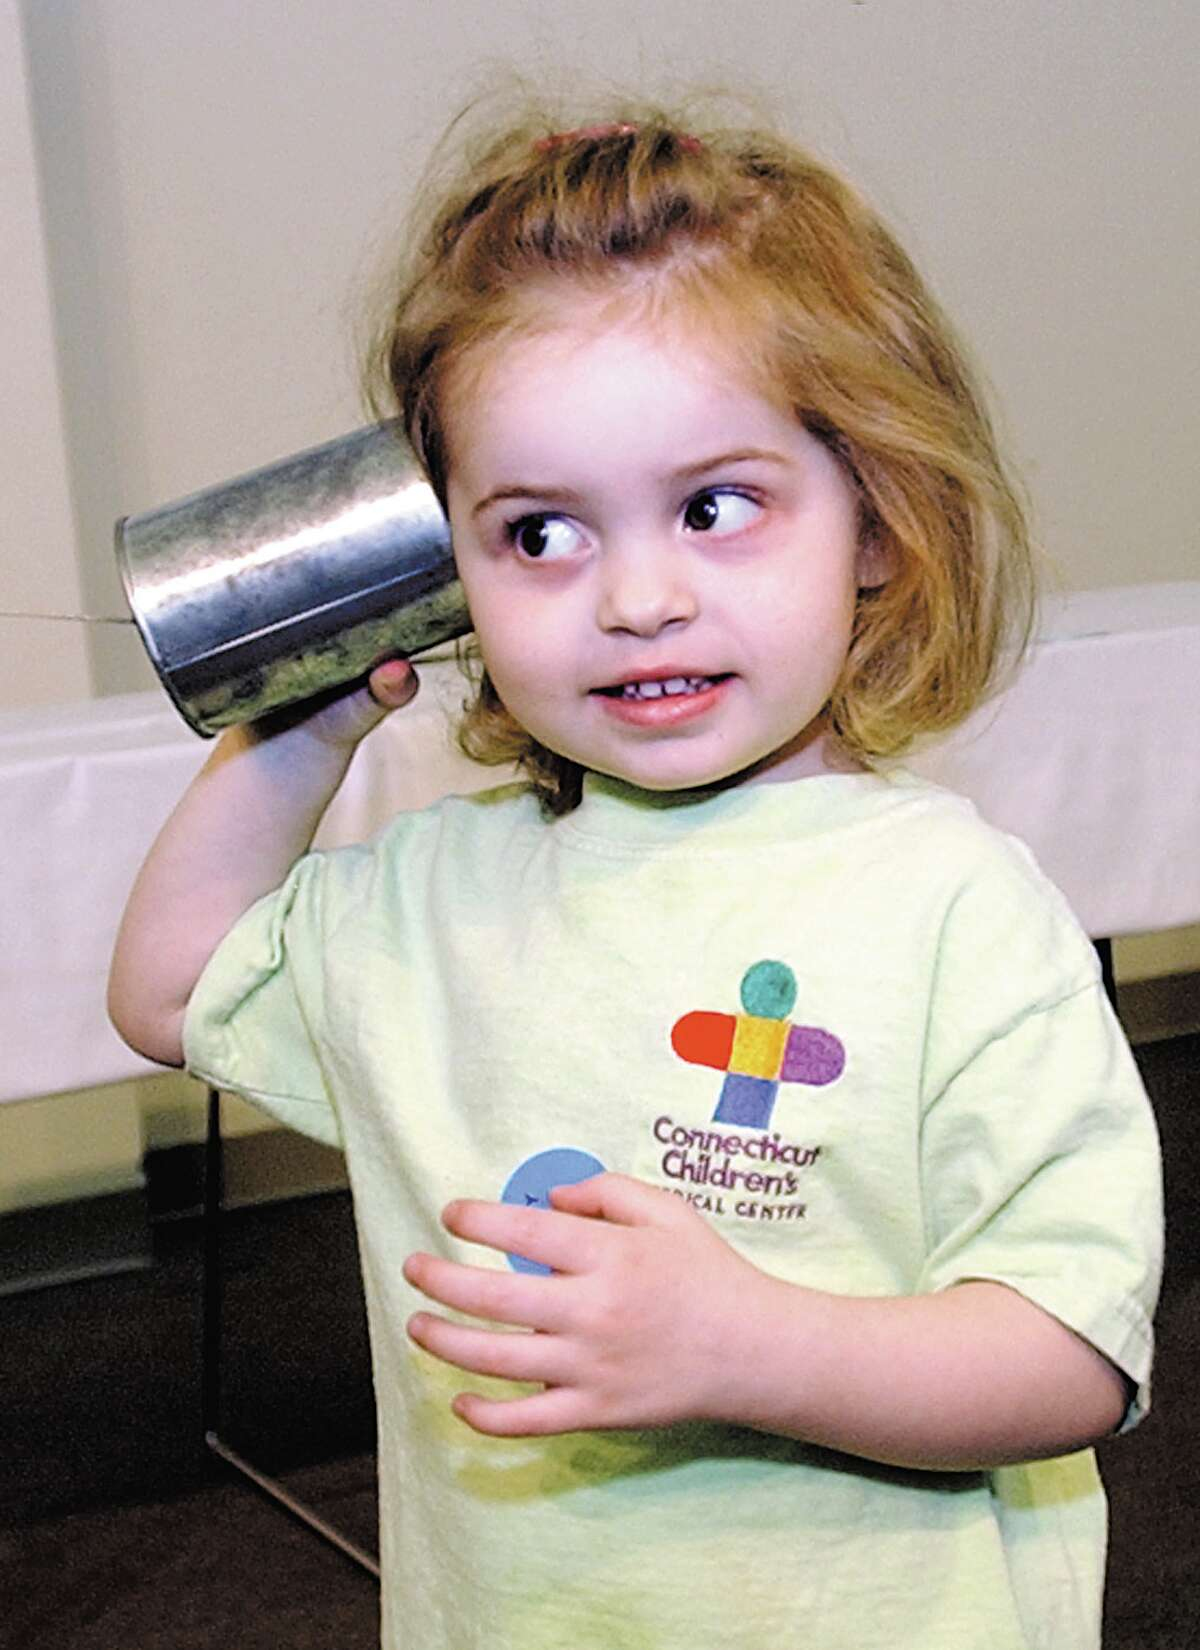 Florence Petite, 4, listens for the voice of her father Darren of Bloomfield at the Vintage Radio and Communications booth at the Home Education Fair at Middlesex Community College on Saturday..............TW photo.............053103............MPtalk.jpg